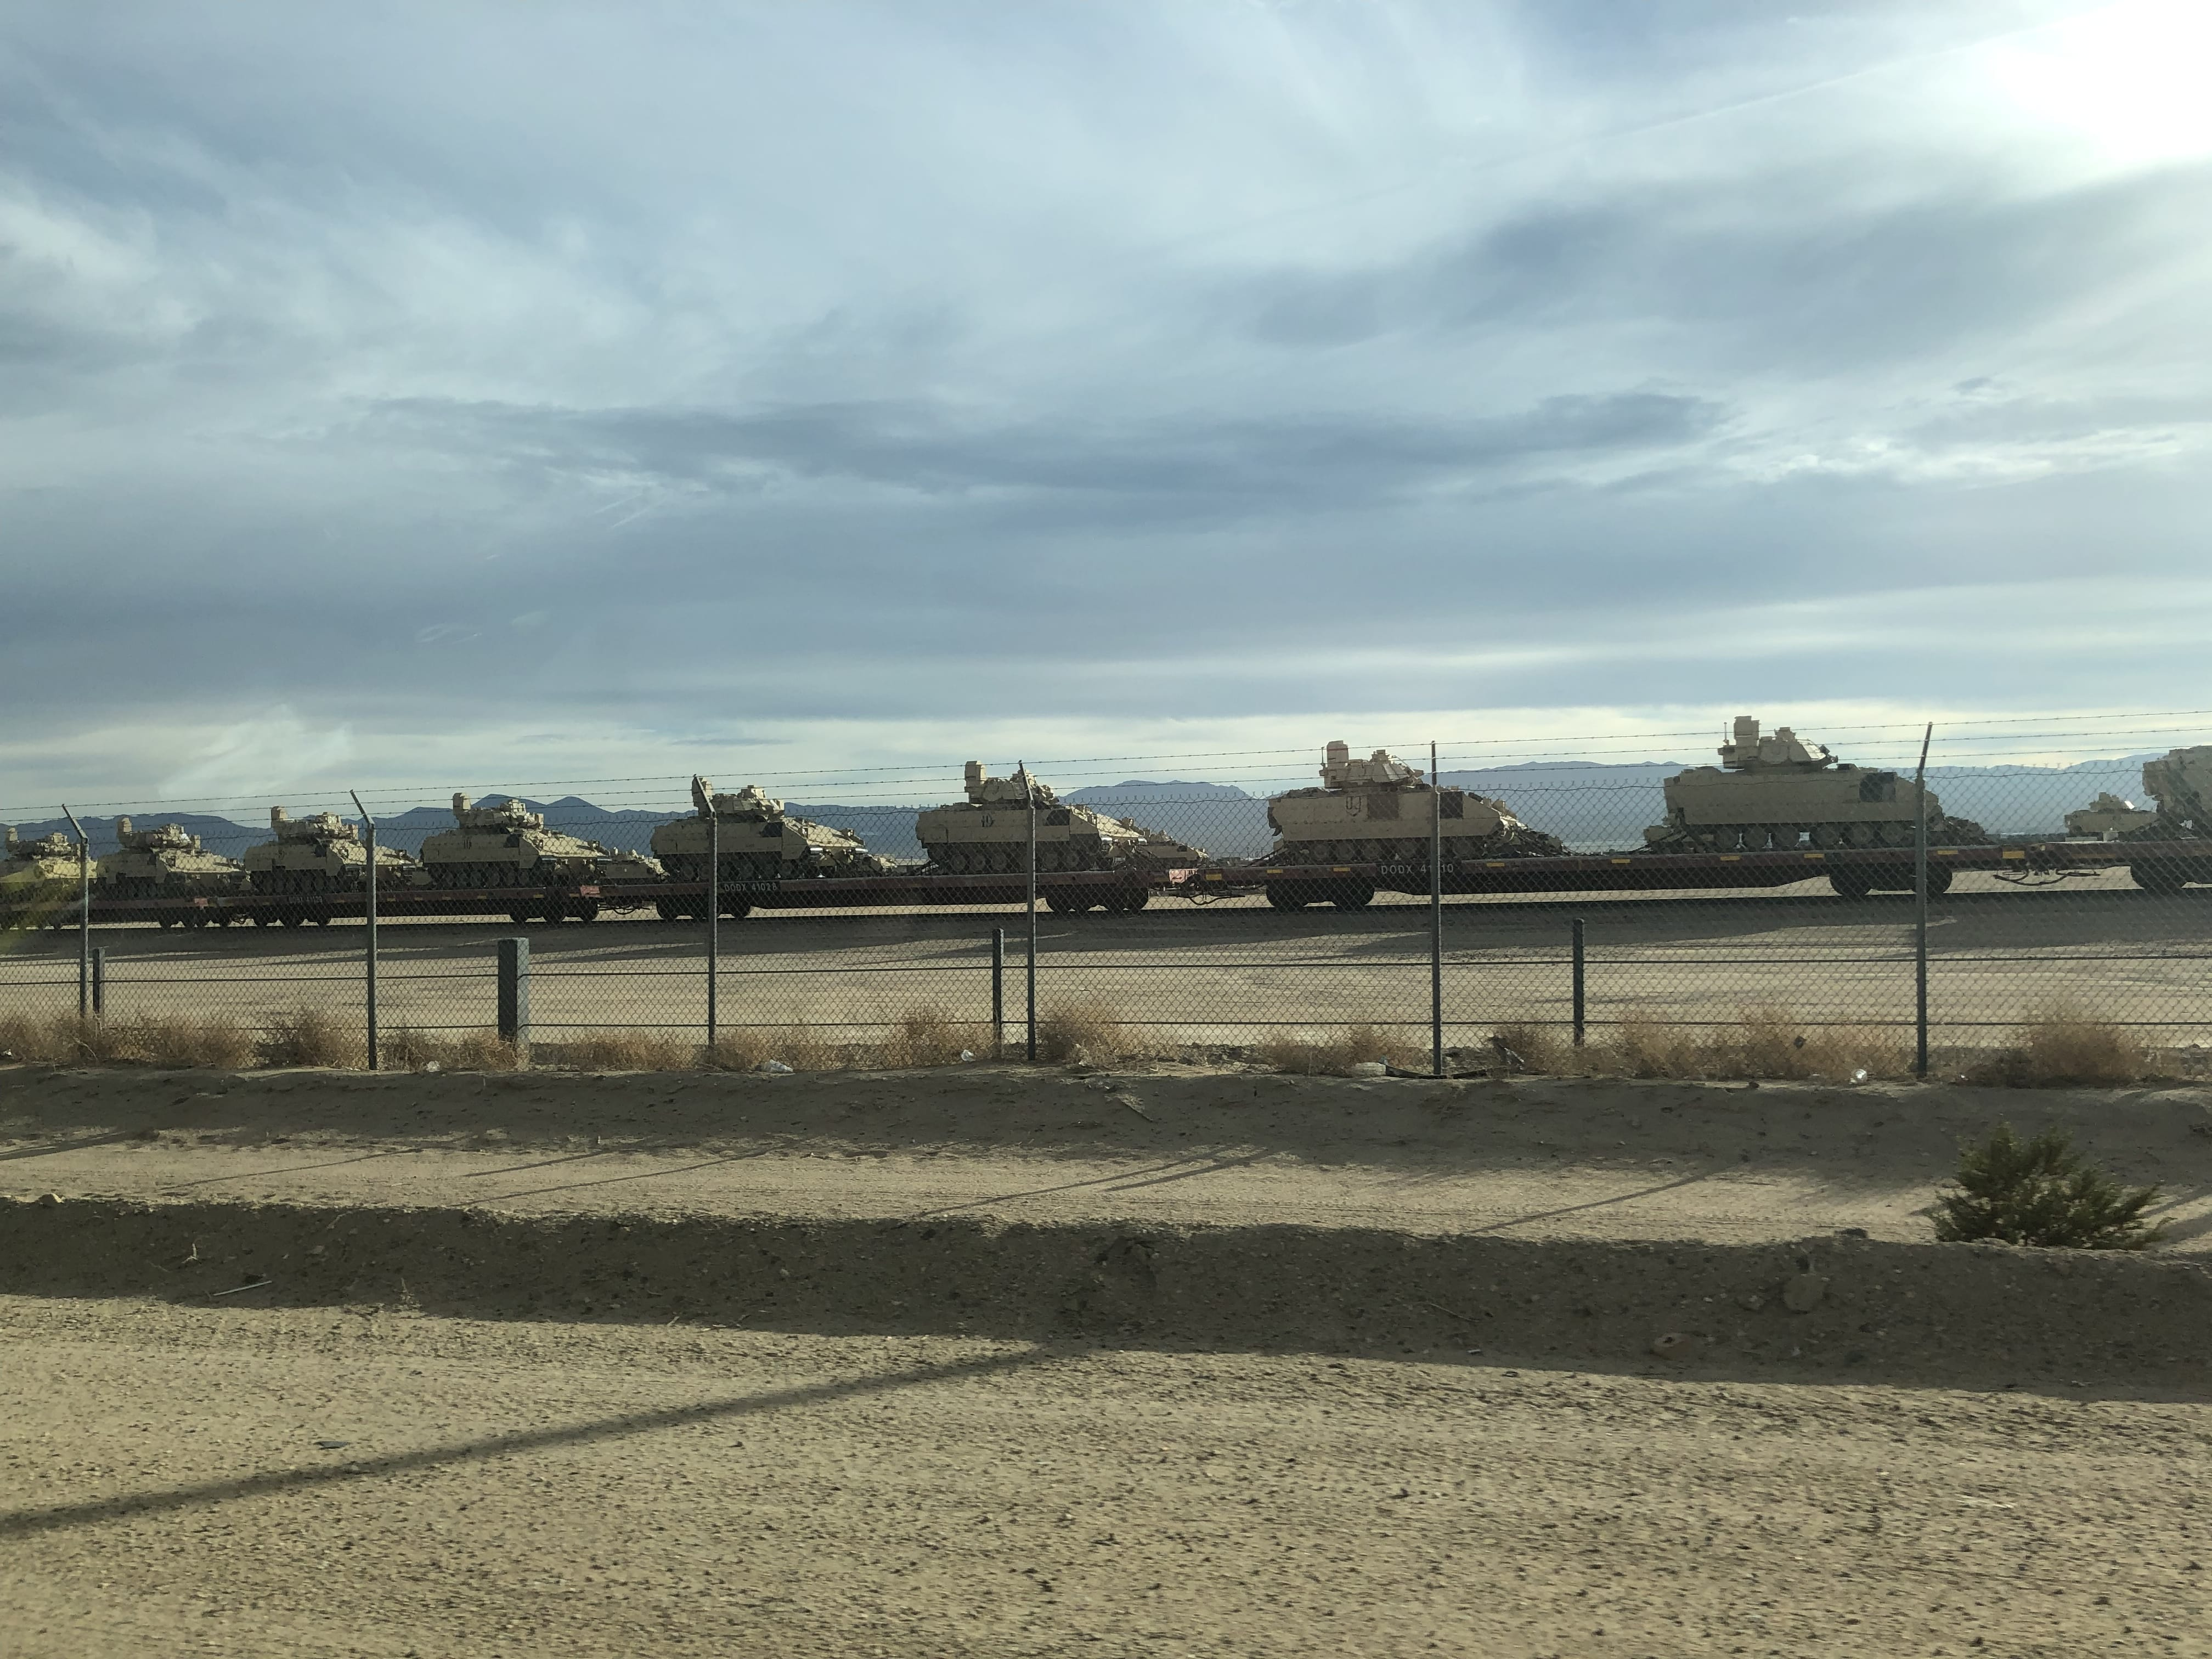 On the way to Las Vegas, we saw a bunch of M2 Bradley waiting to be transferred at Barstow.